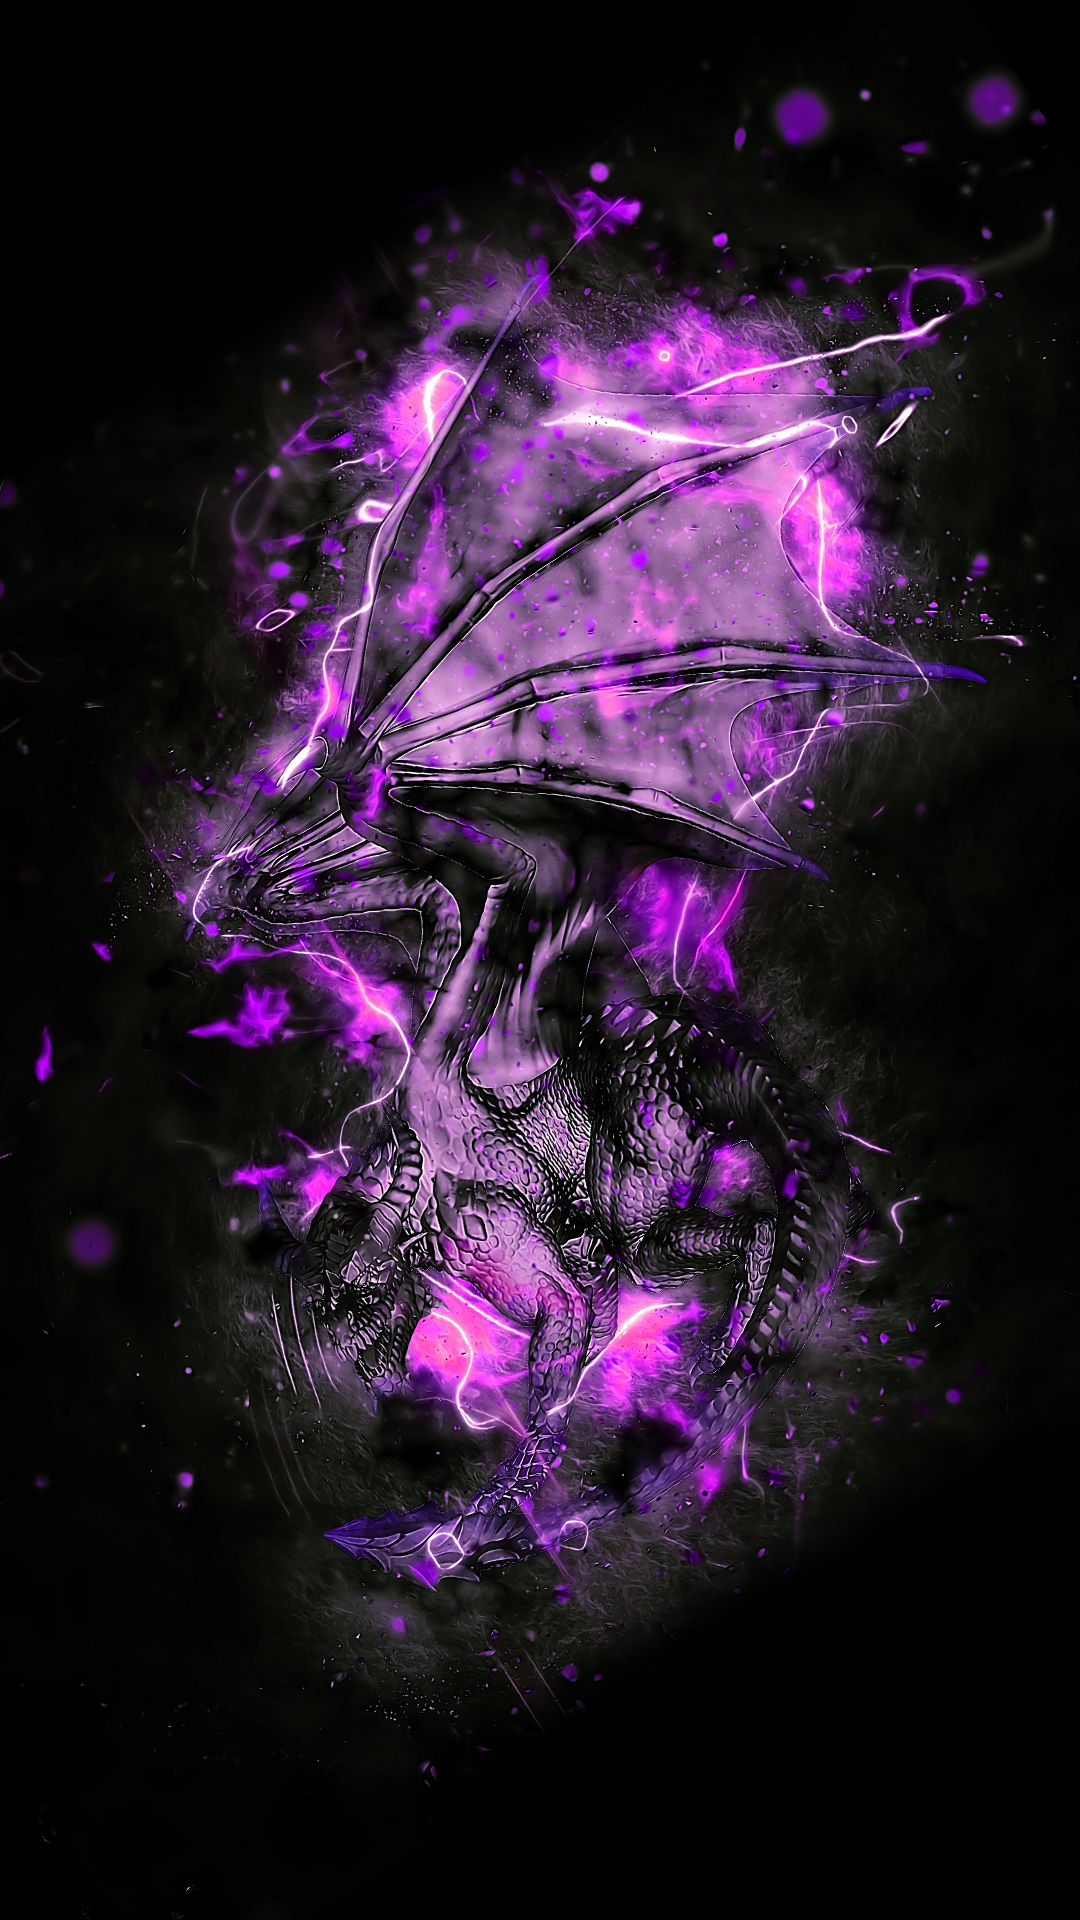 Purple Dragon HD Wallpaper For Your Mobile Phone